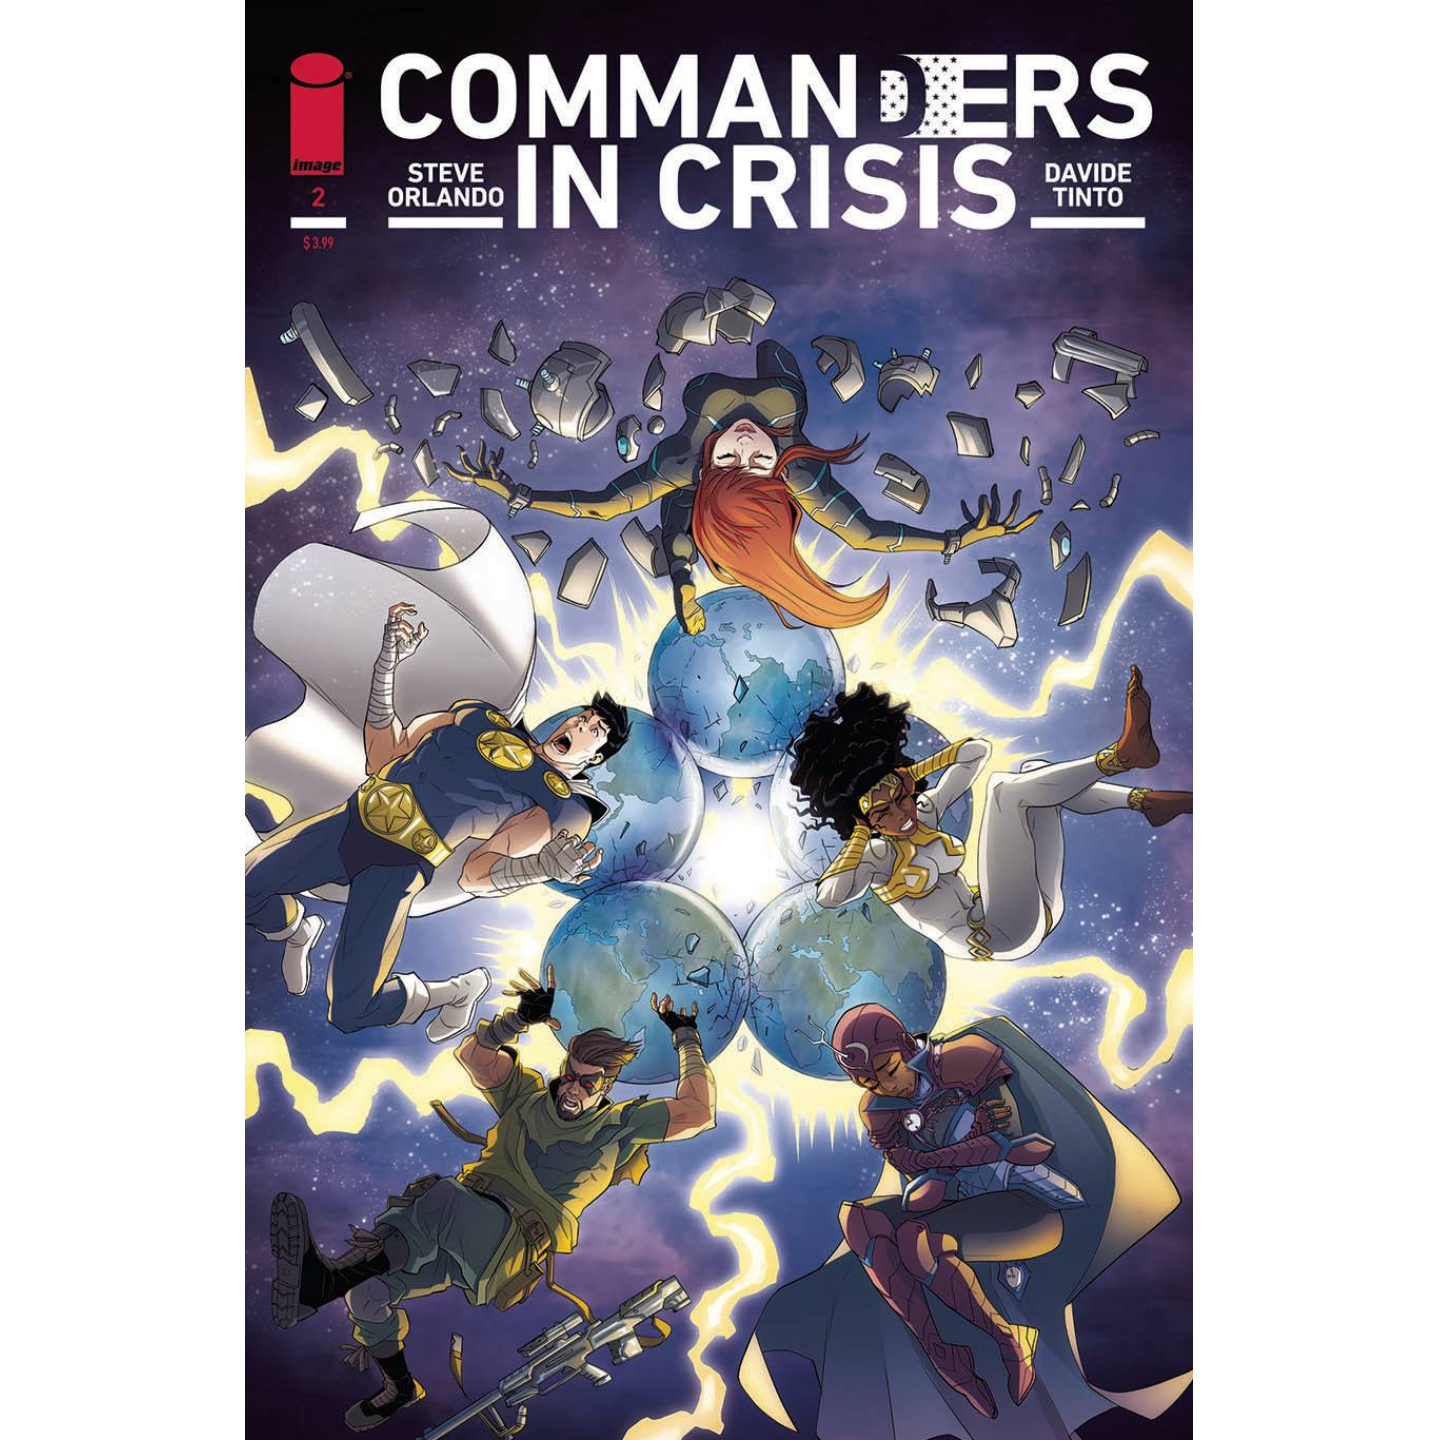 COMMANDERS IN CRISIS #2 (OF 12) CVR A TINTO (MR)